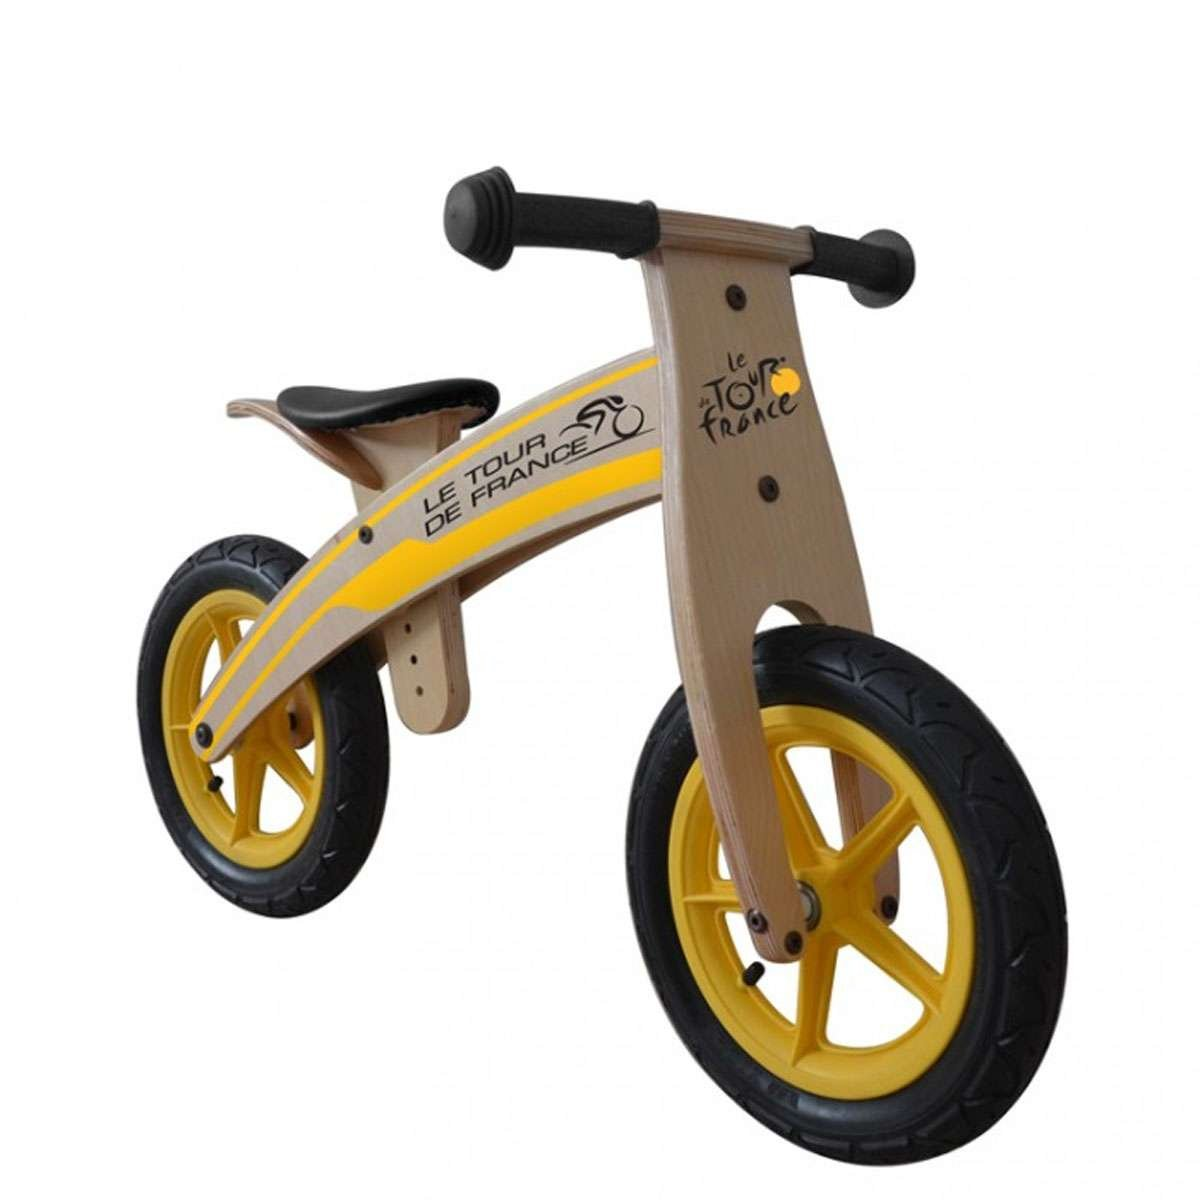 Tour de France Wood Running/Balance Bike, 12 inch Wheels, Kid's Bike, Wood Grain Color by Tour De France B00I4Z0ZYY